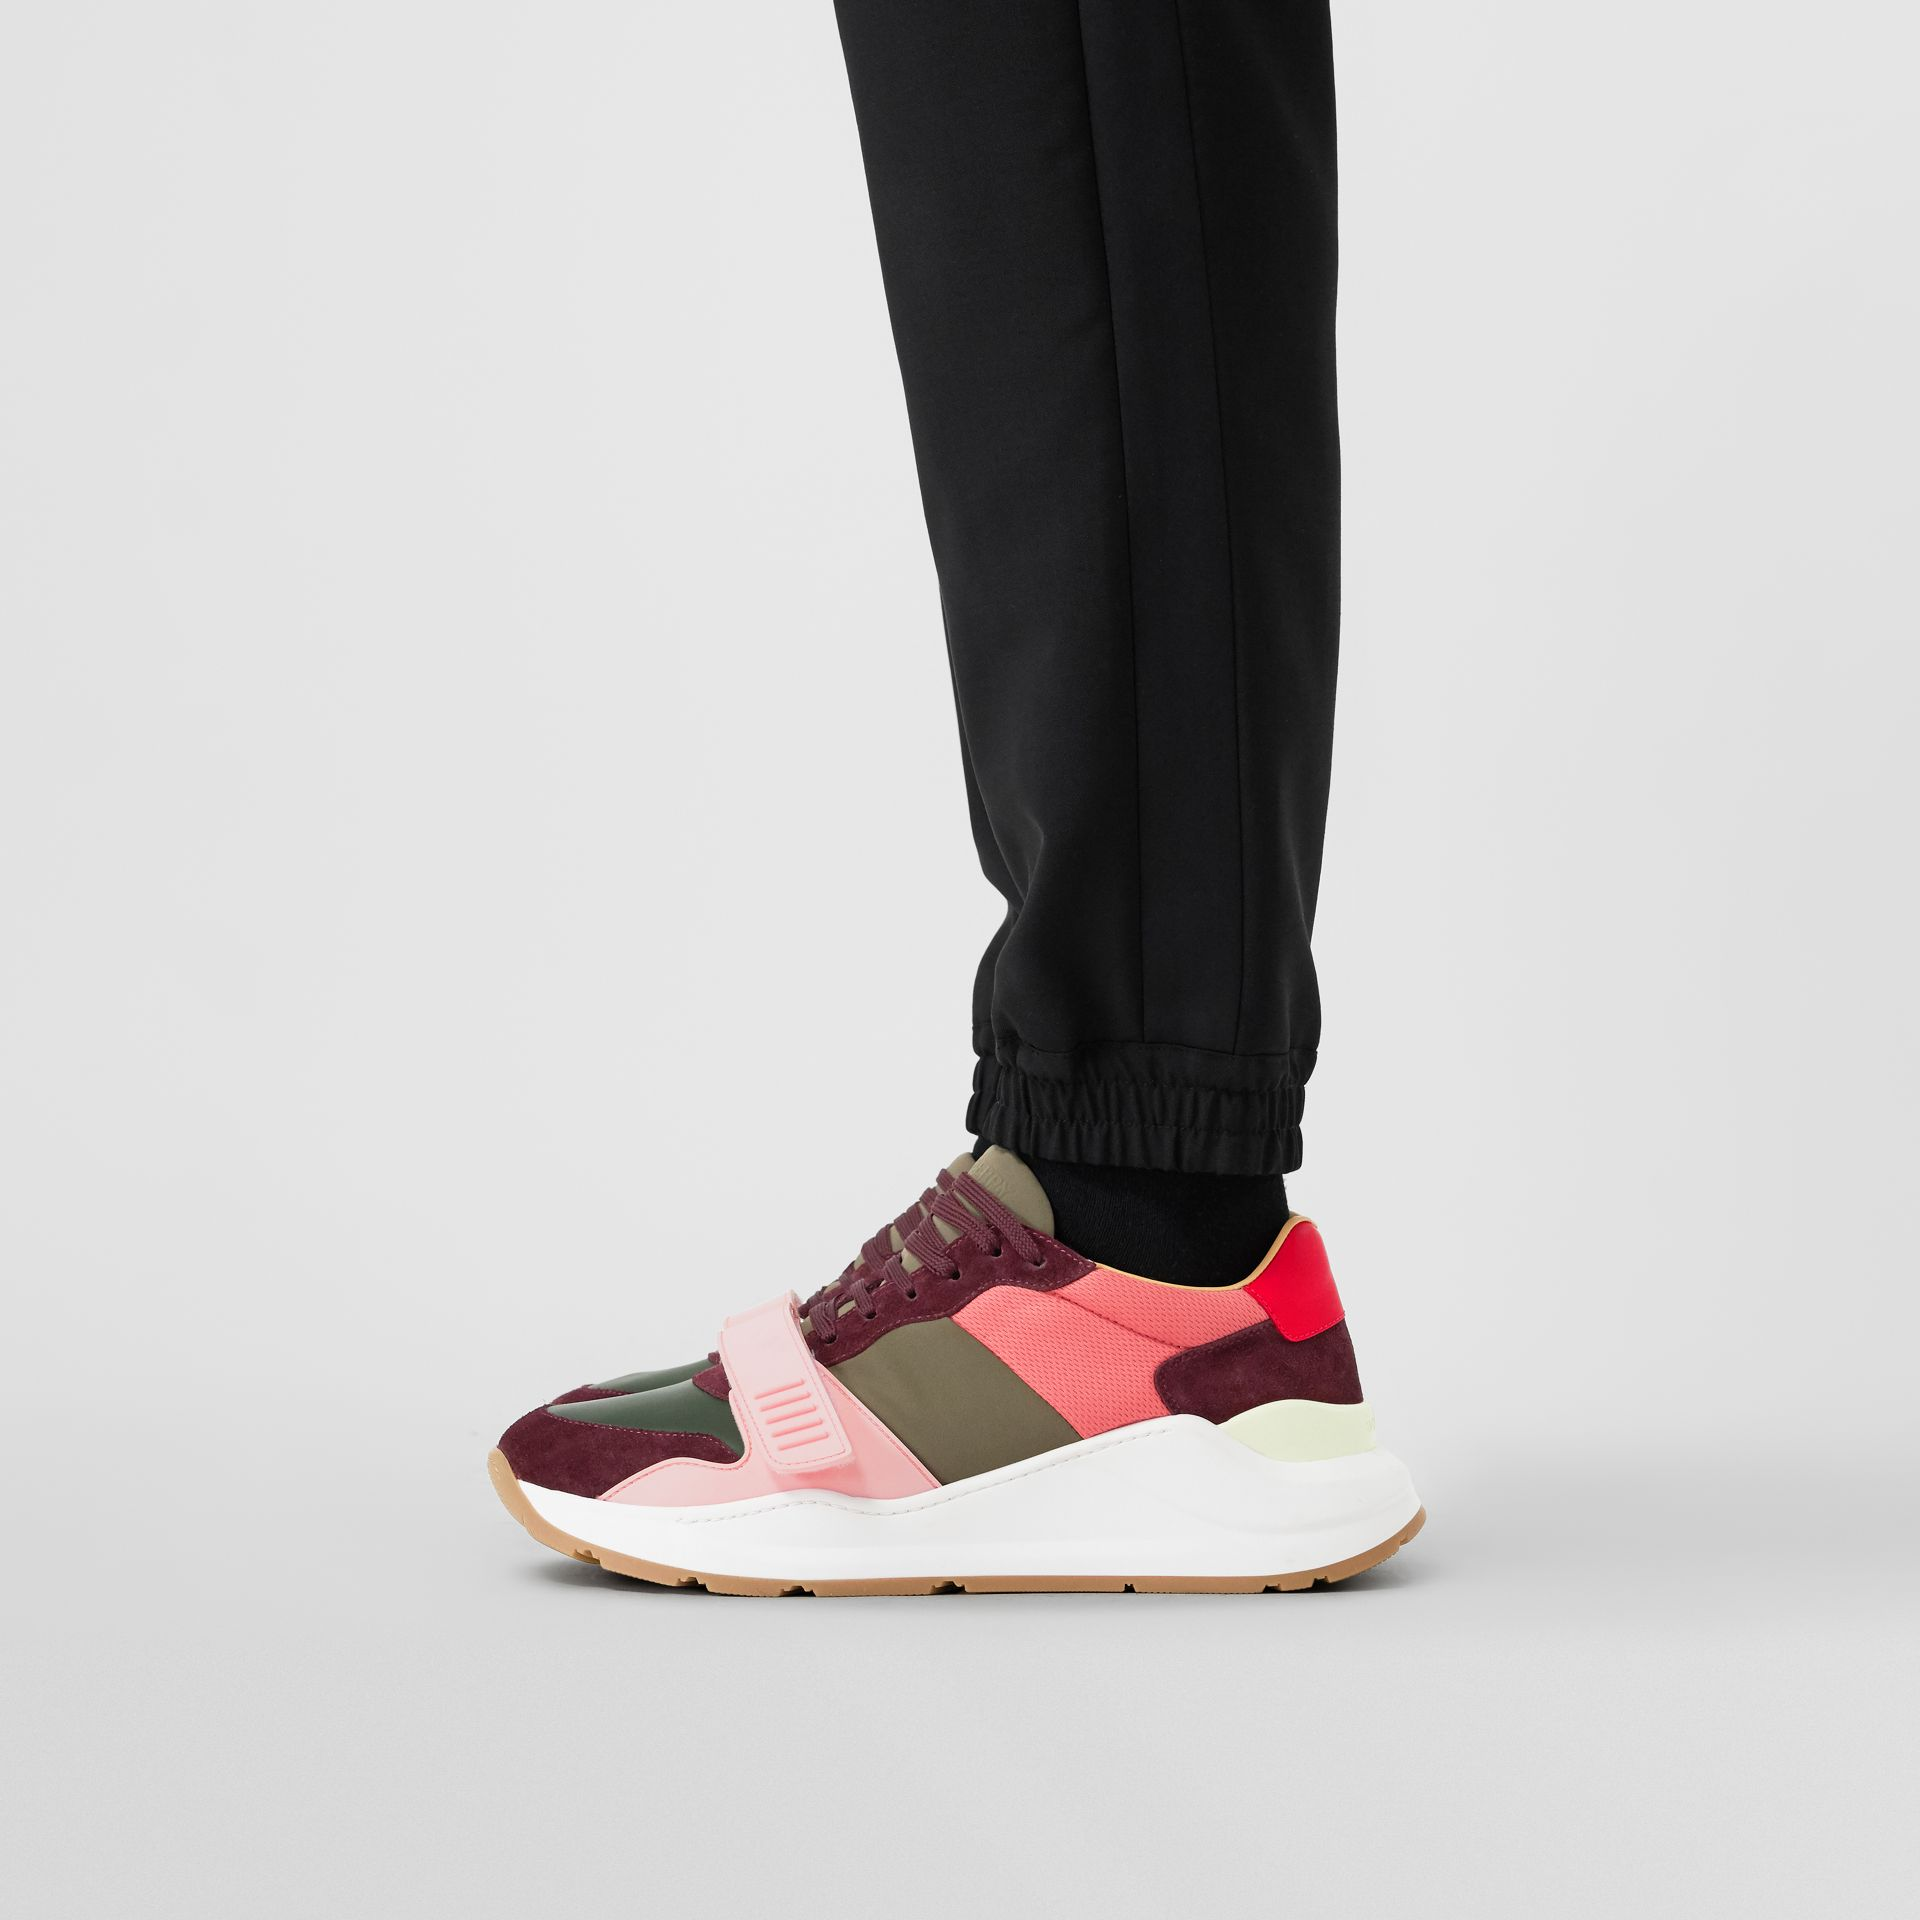 Colour Block Suede and Neoprene Sneakers in Bordeaux/khaki - Men | Burberry Canada - gallery image 2